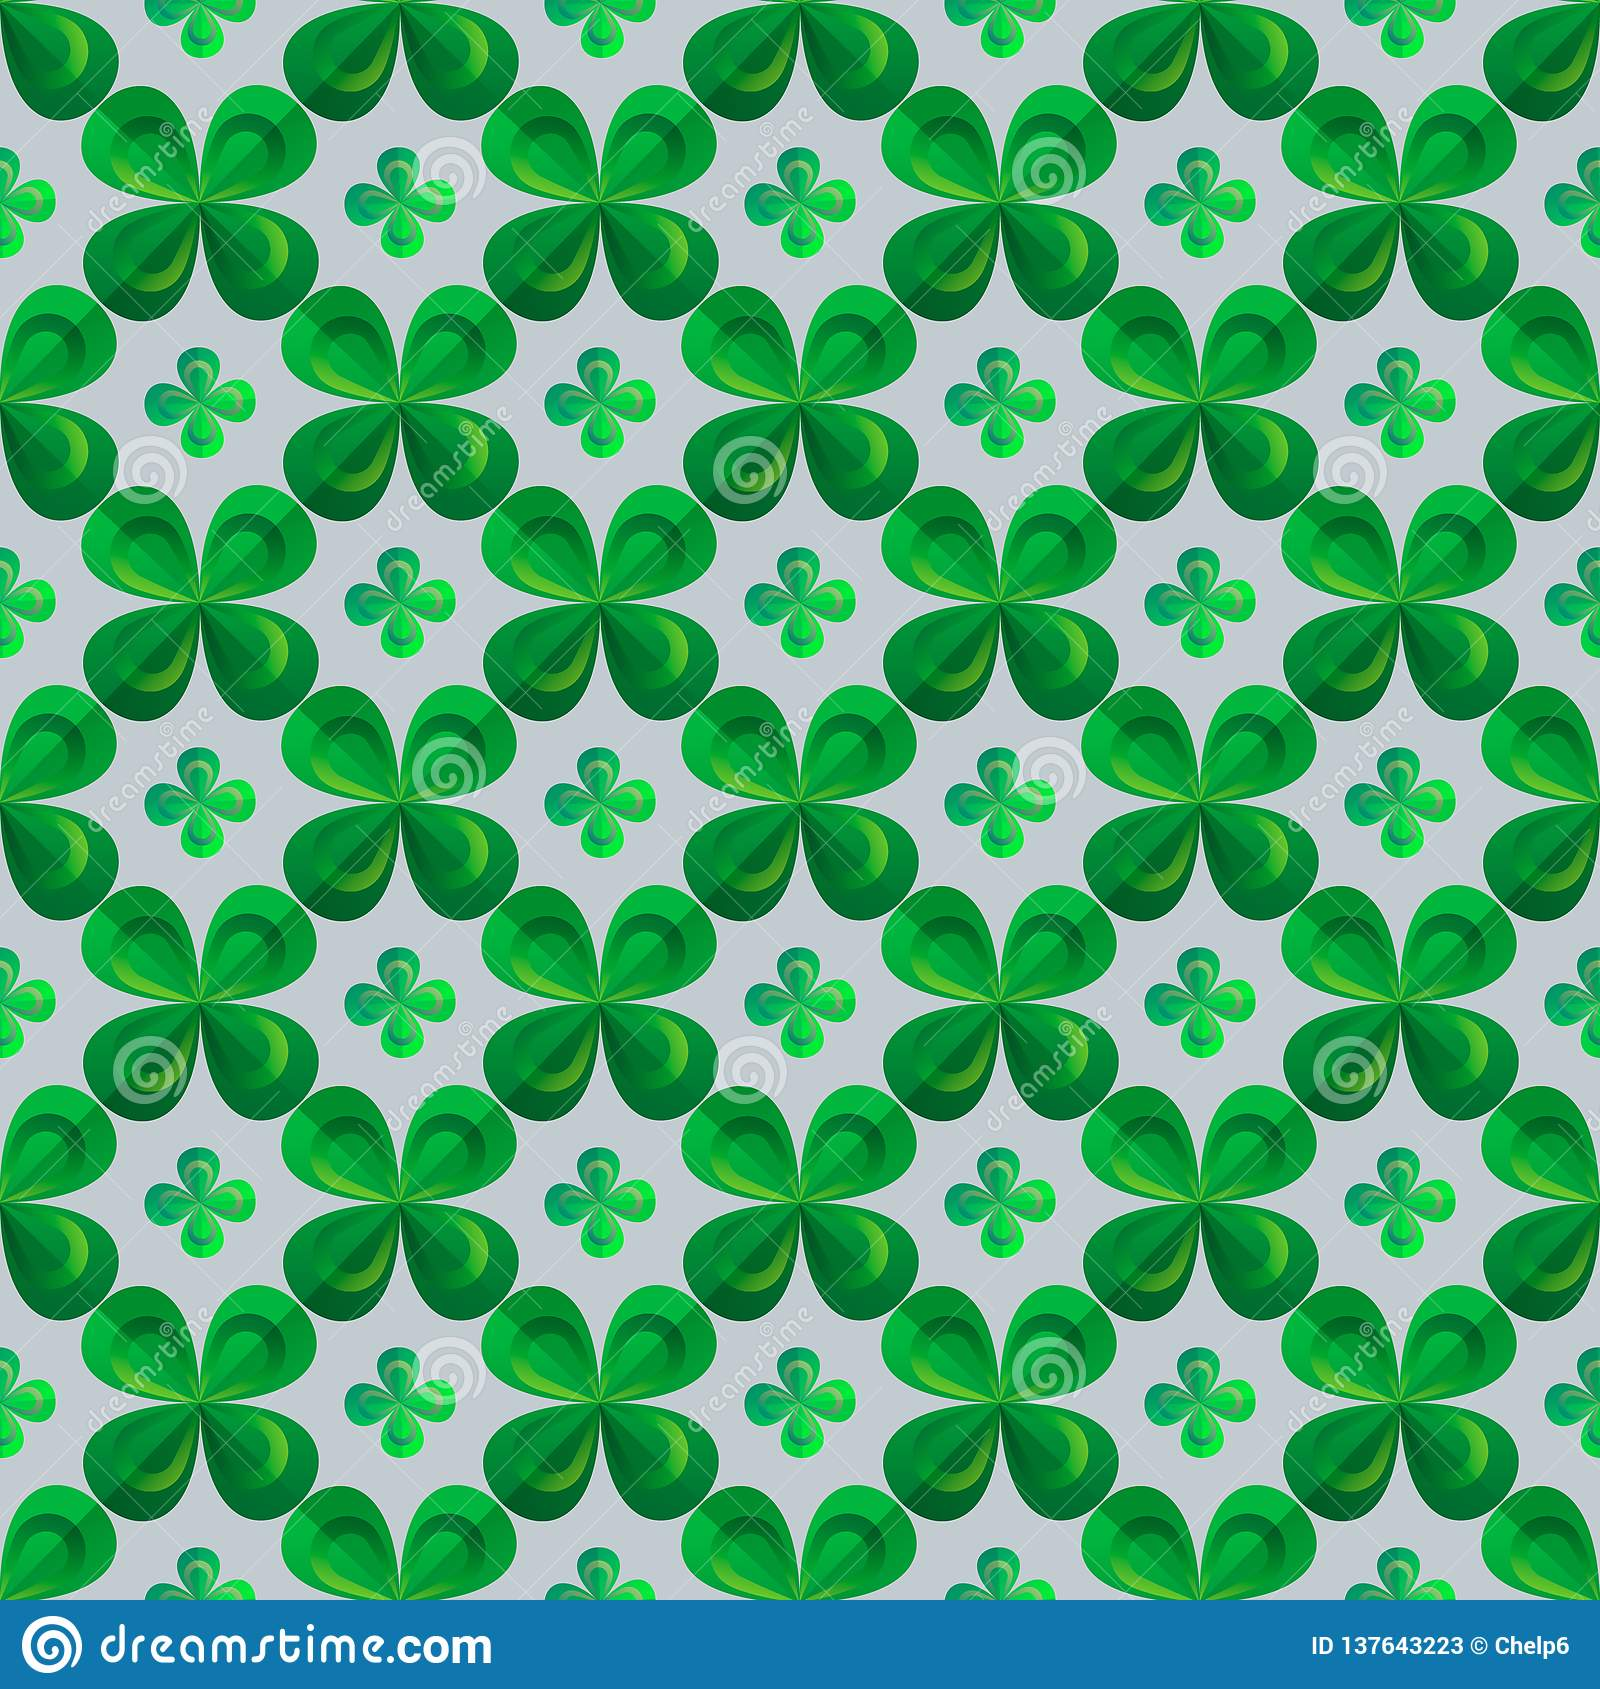 Floral Print Clover Leaves Seamless Vector Pattern St